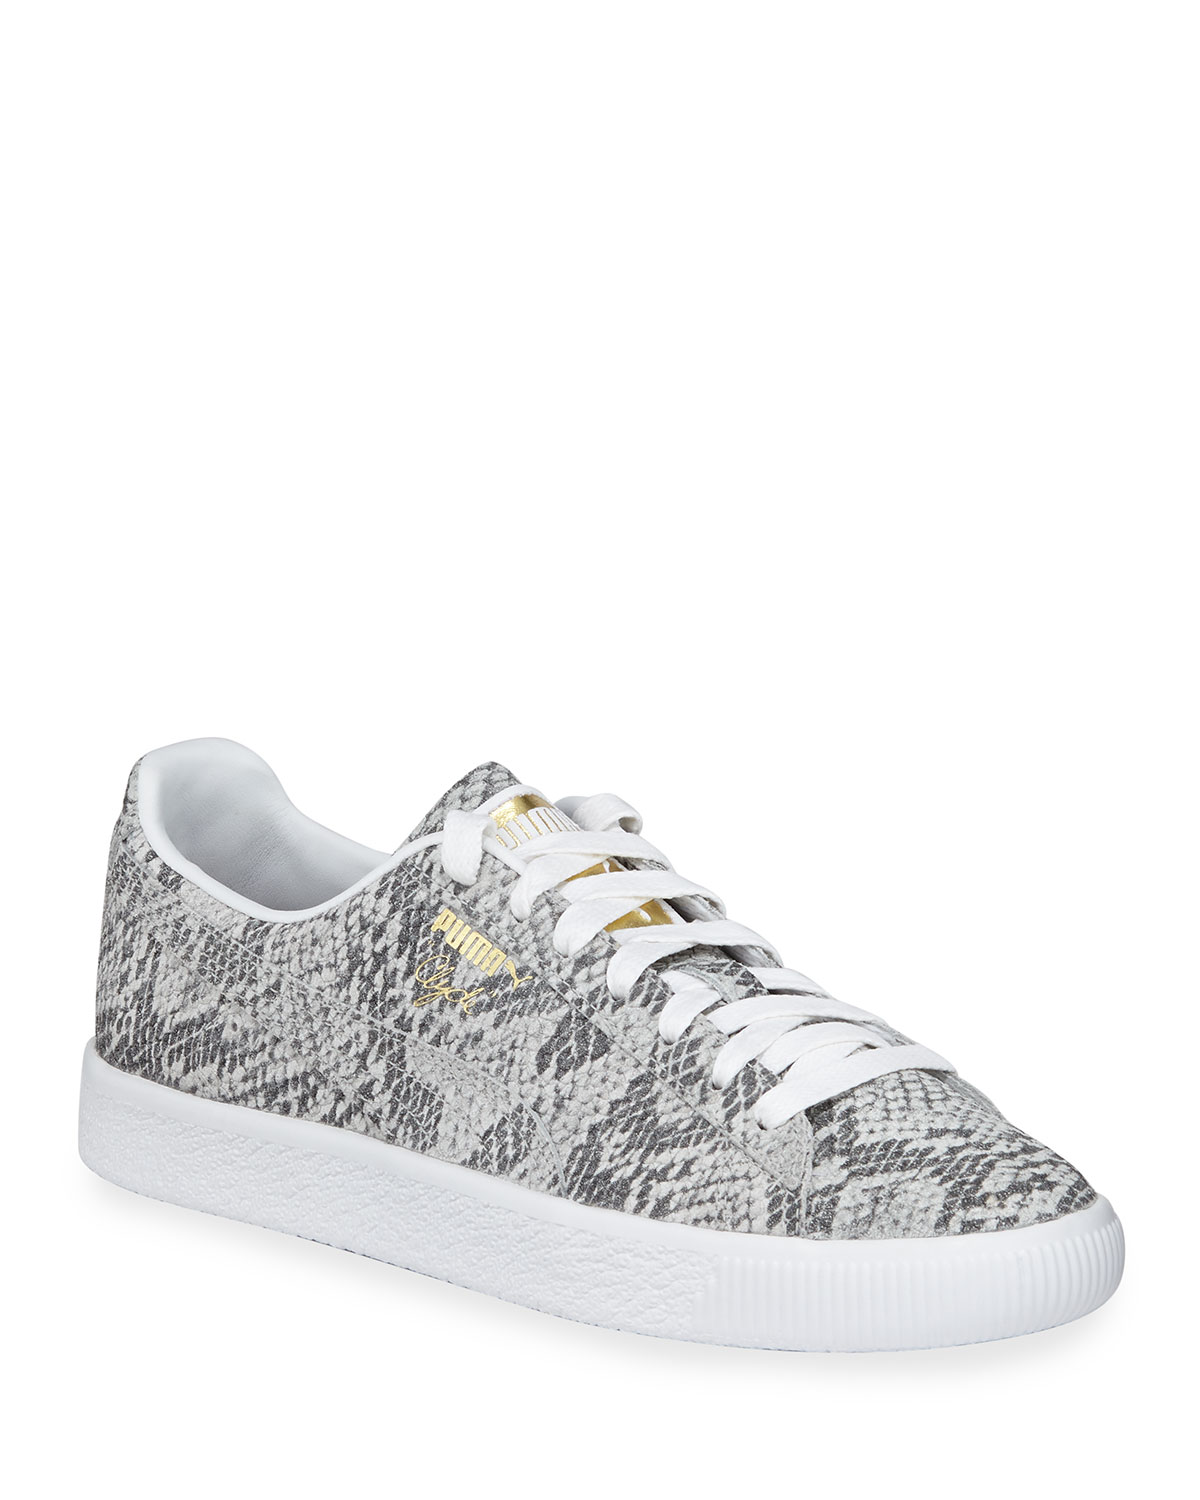 95358af87022 Puma Clyde Snake-Print Leather Lace-Up Sneakers